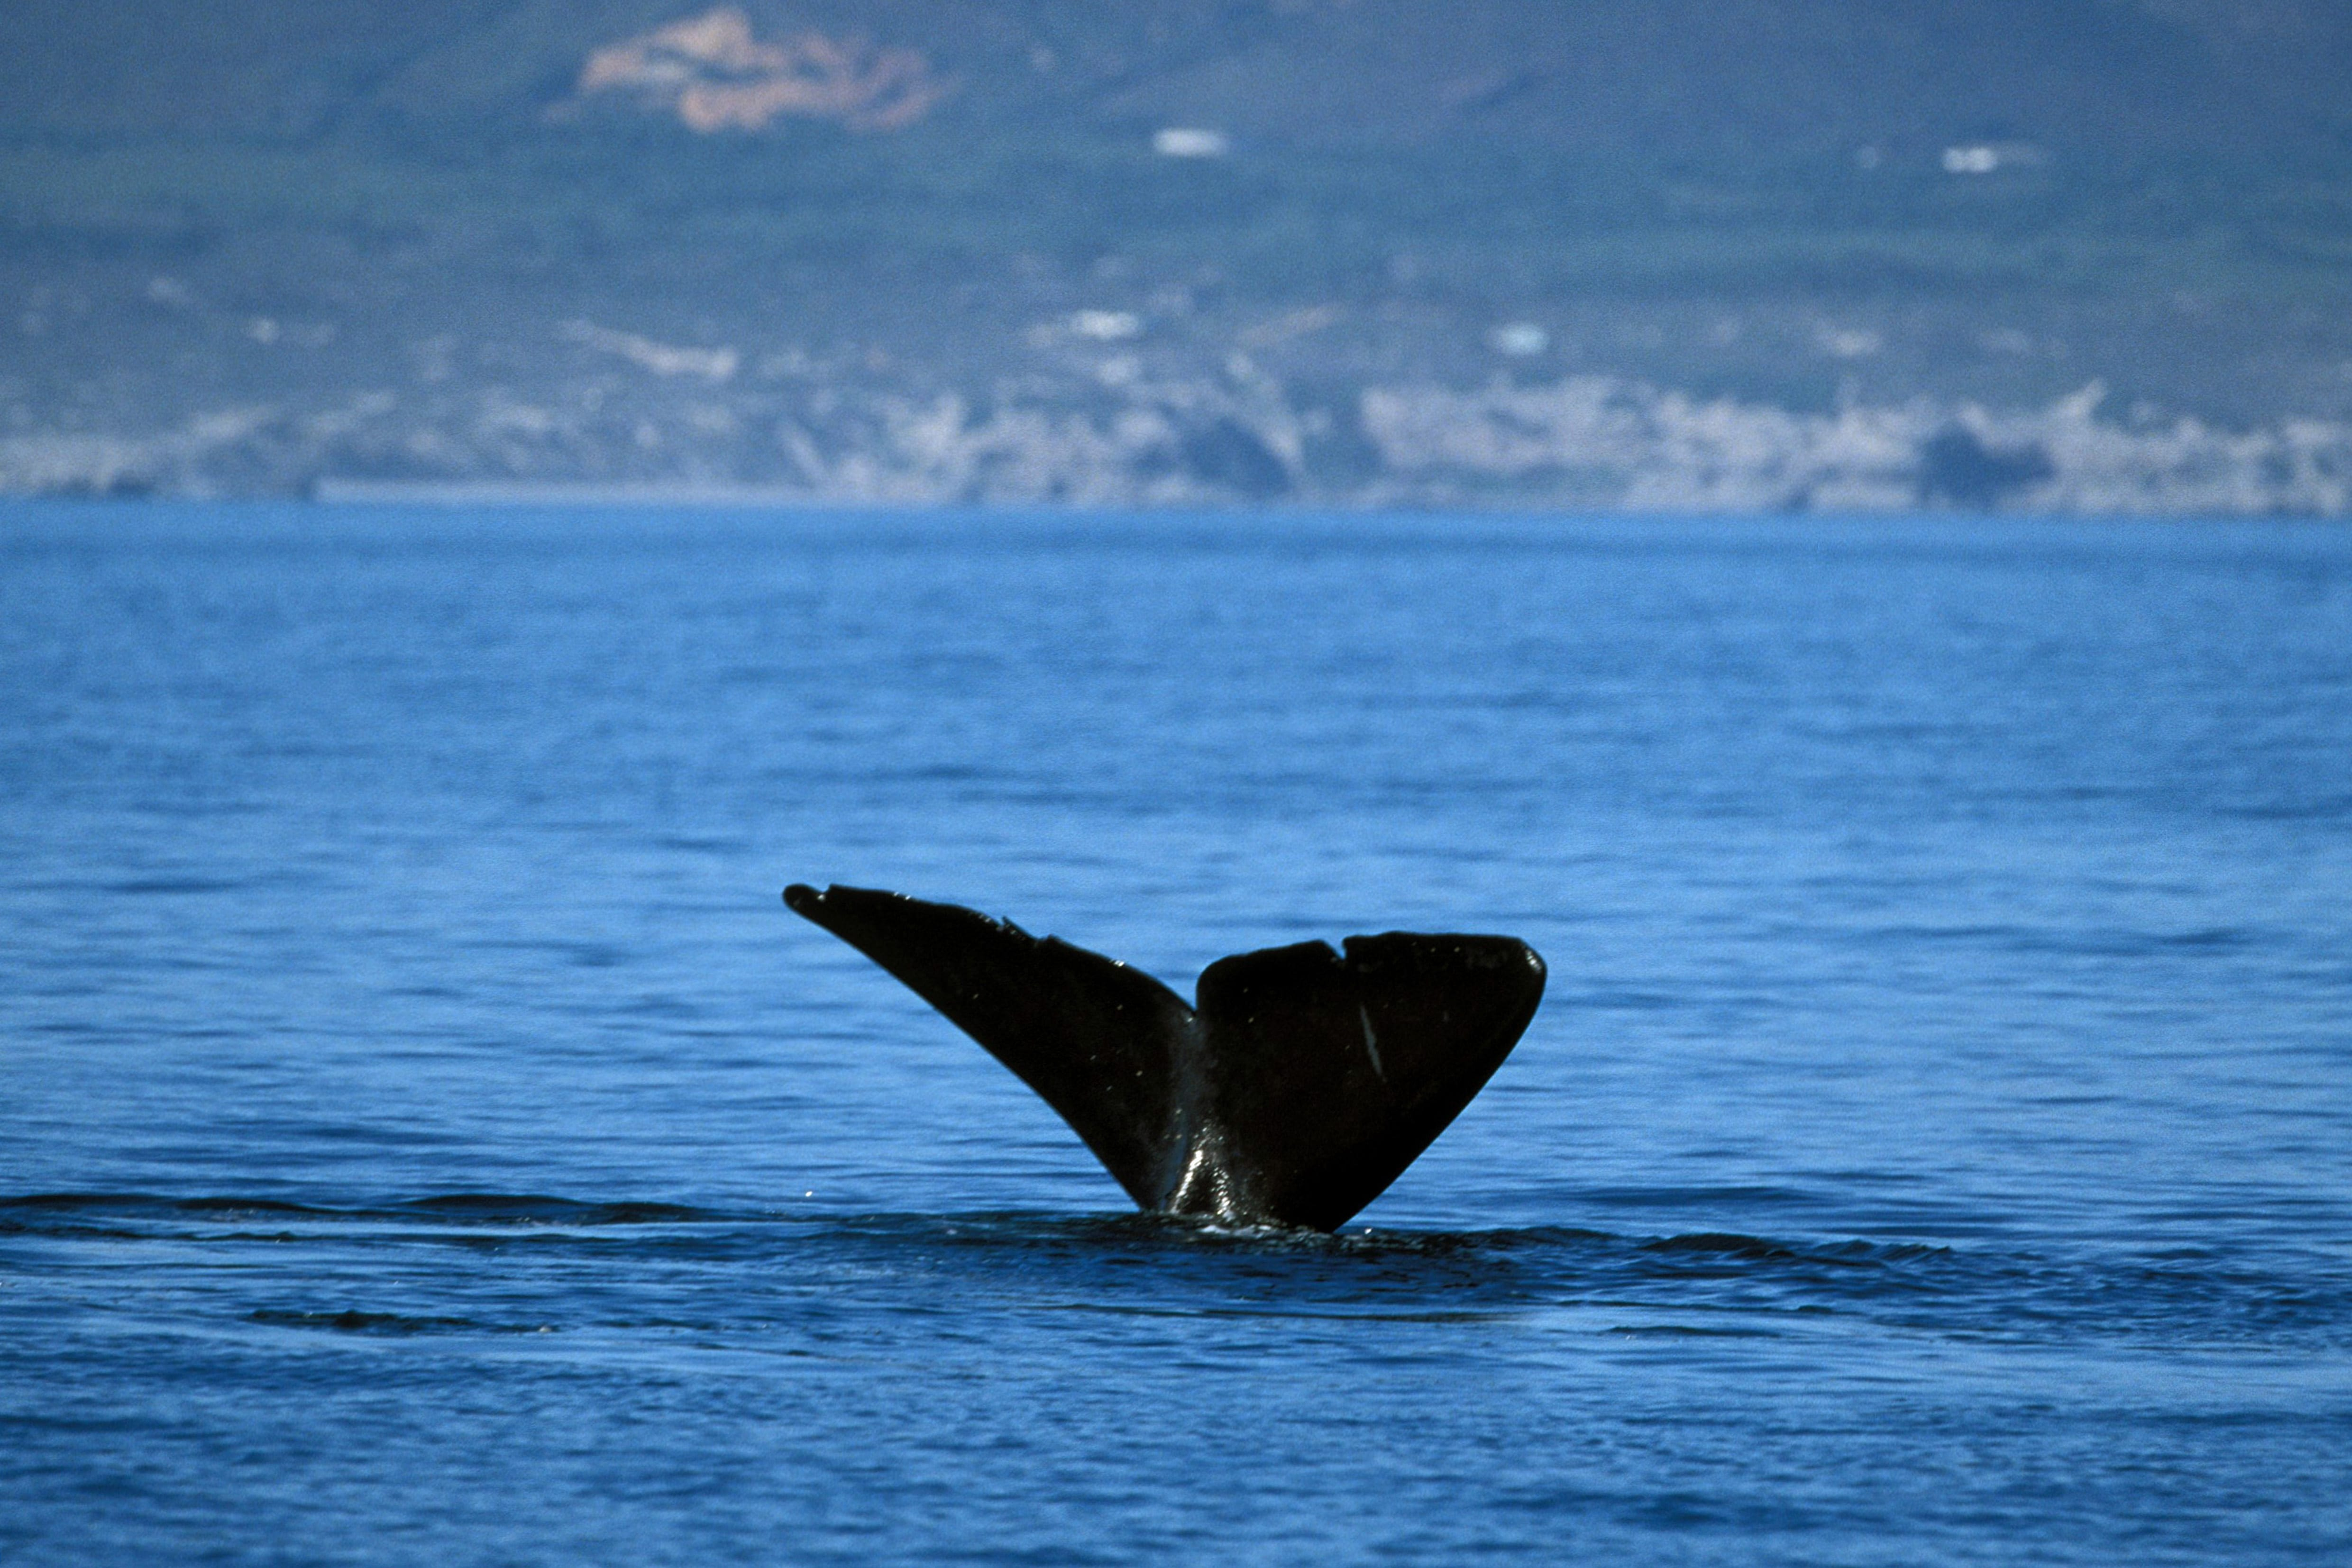 Tail fin of the Southern Right Whale over water (00011118)